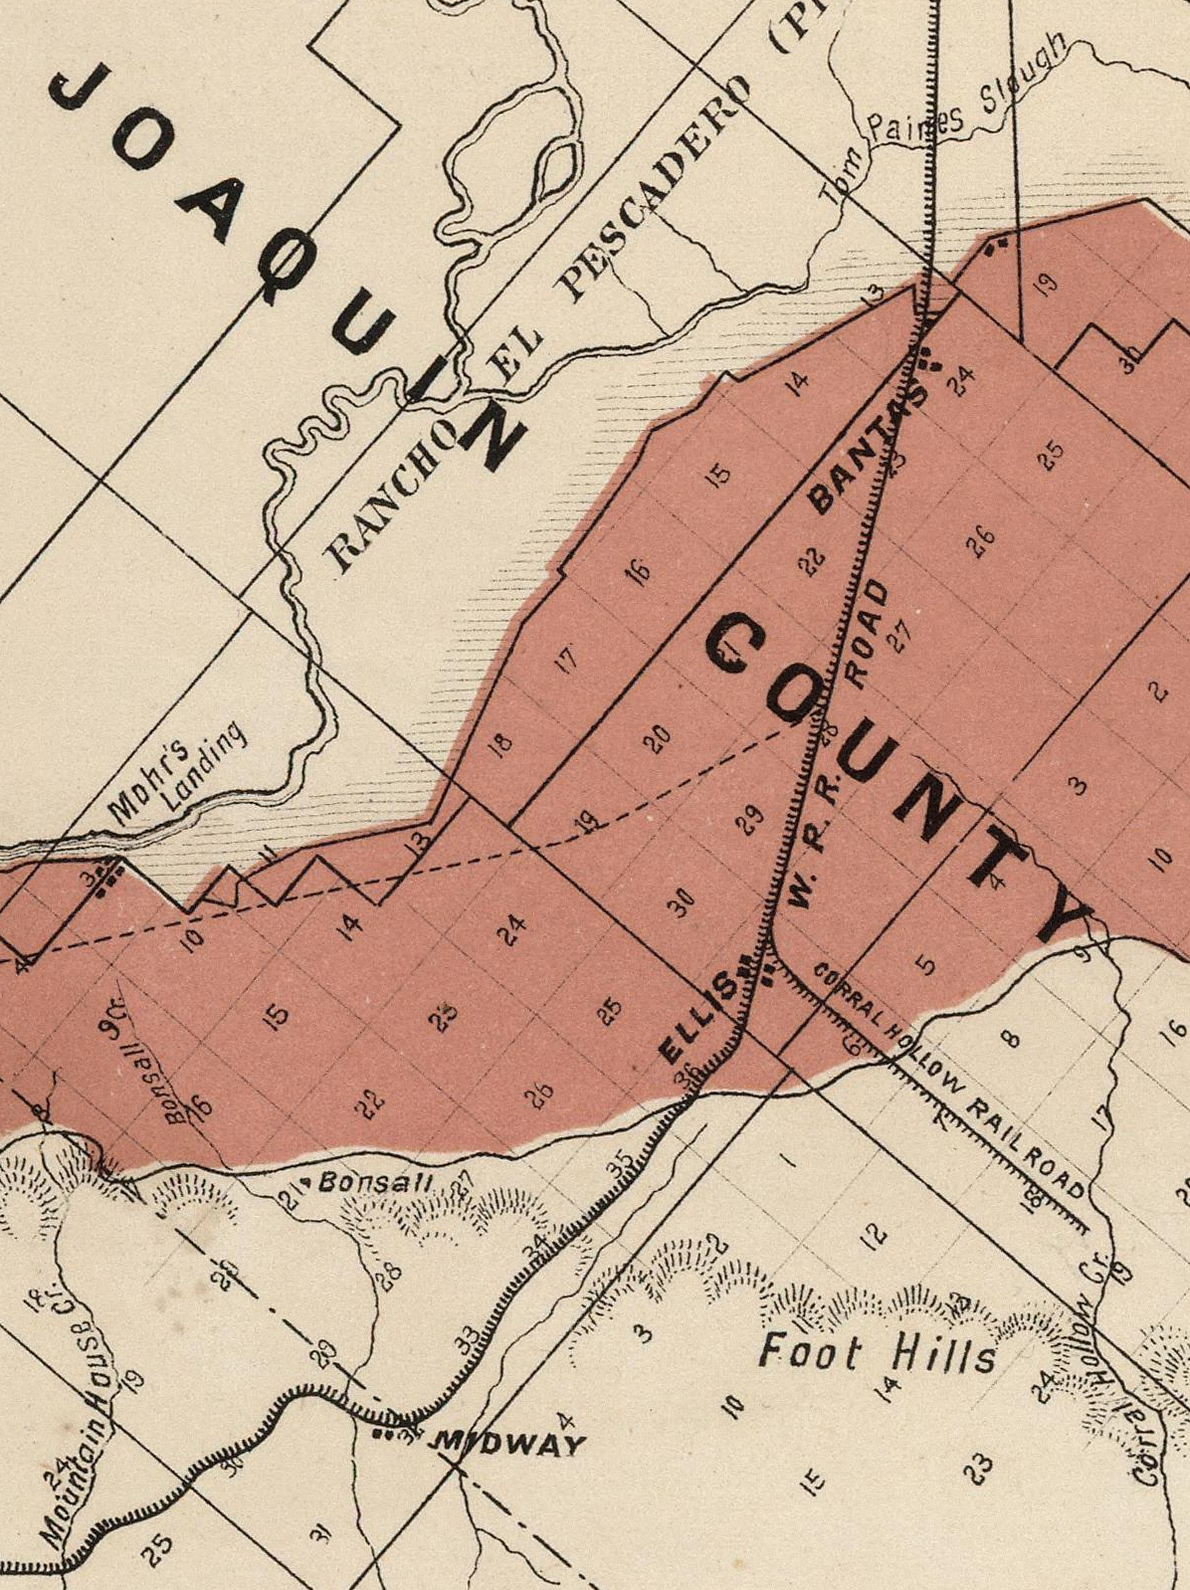 1877 West Side Irrigation Co. Map of Tulare Township (Image)